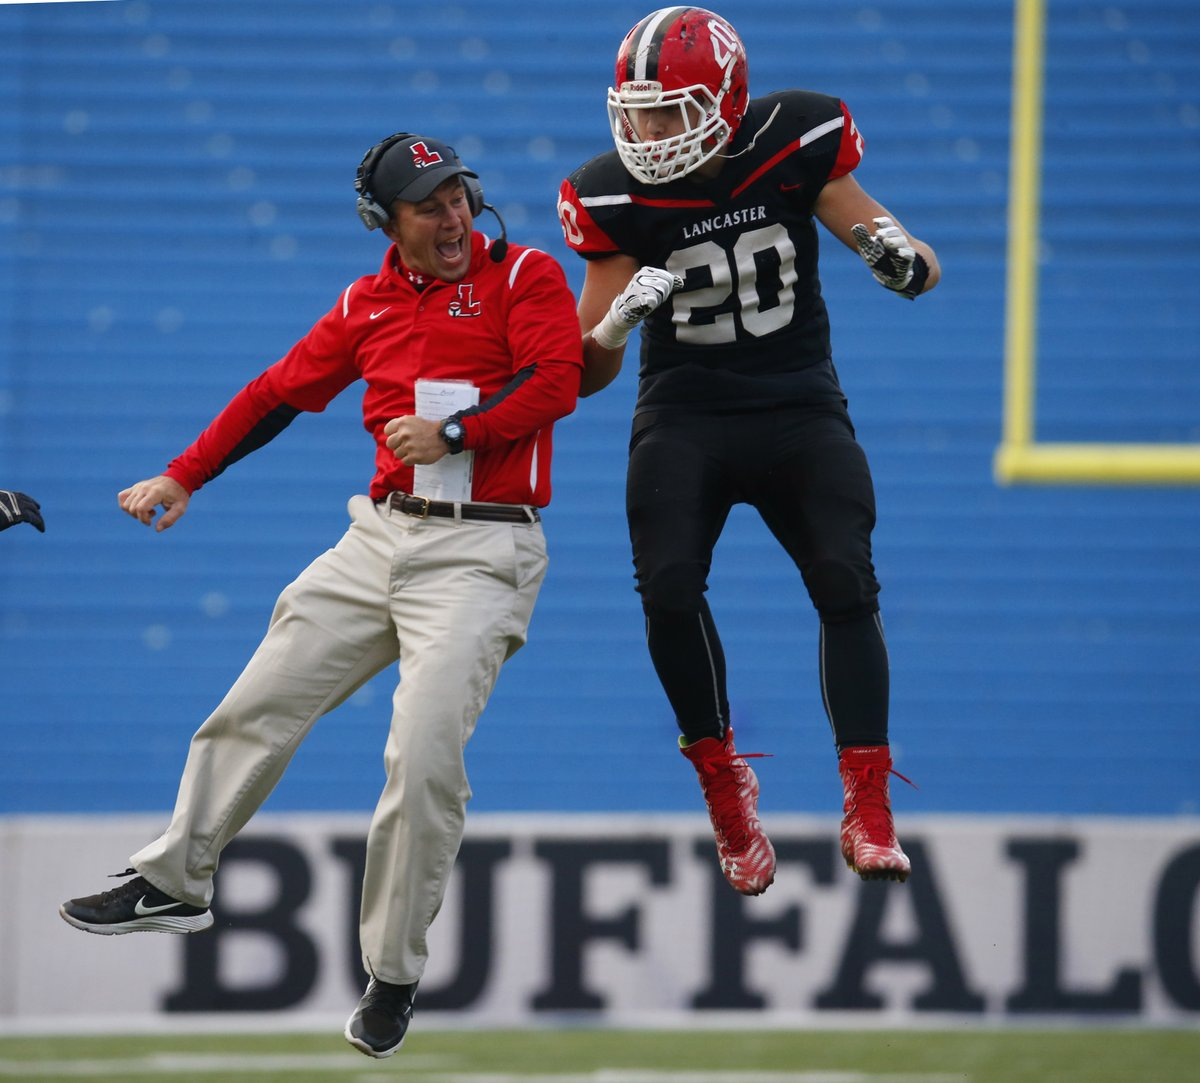 Defensive coordinator Dave Mansell and linebacker Ben Damiani celebrate after a defensive stand during Lancaster's 27-7 victory over Orchard Park in the Section VI Class AA final. (Harry Scull Jr./Buffalo News)